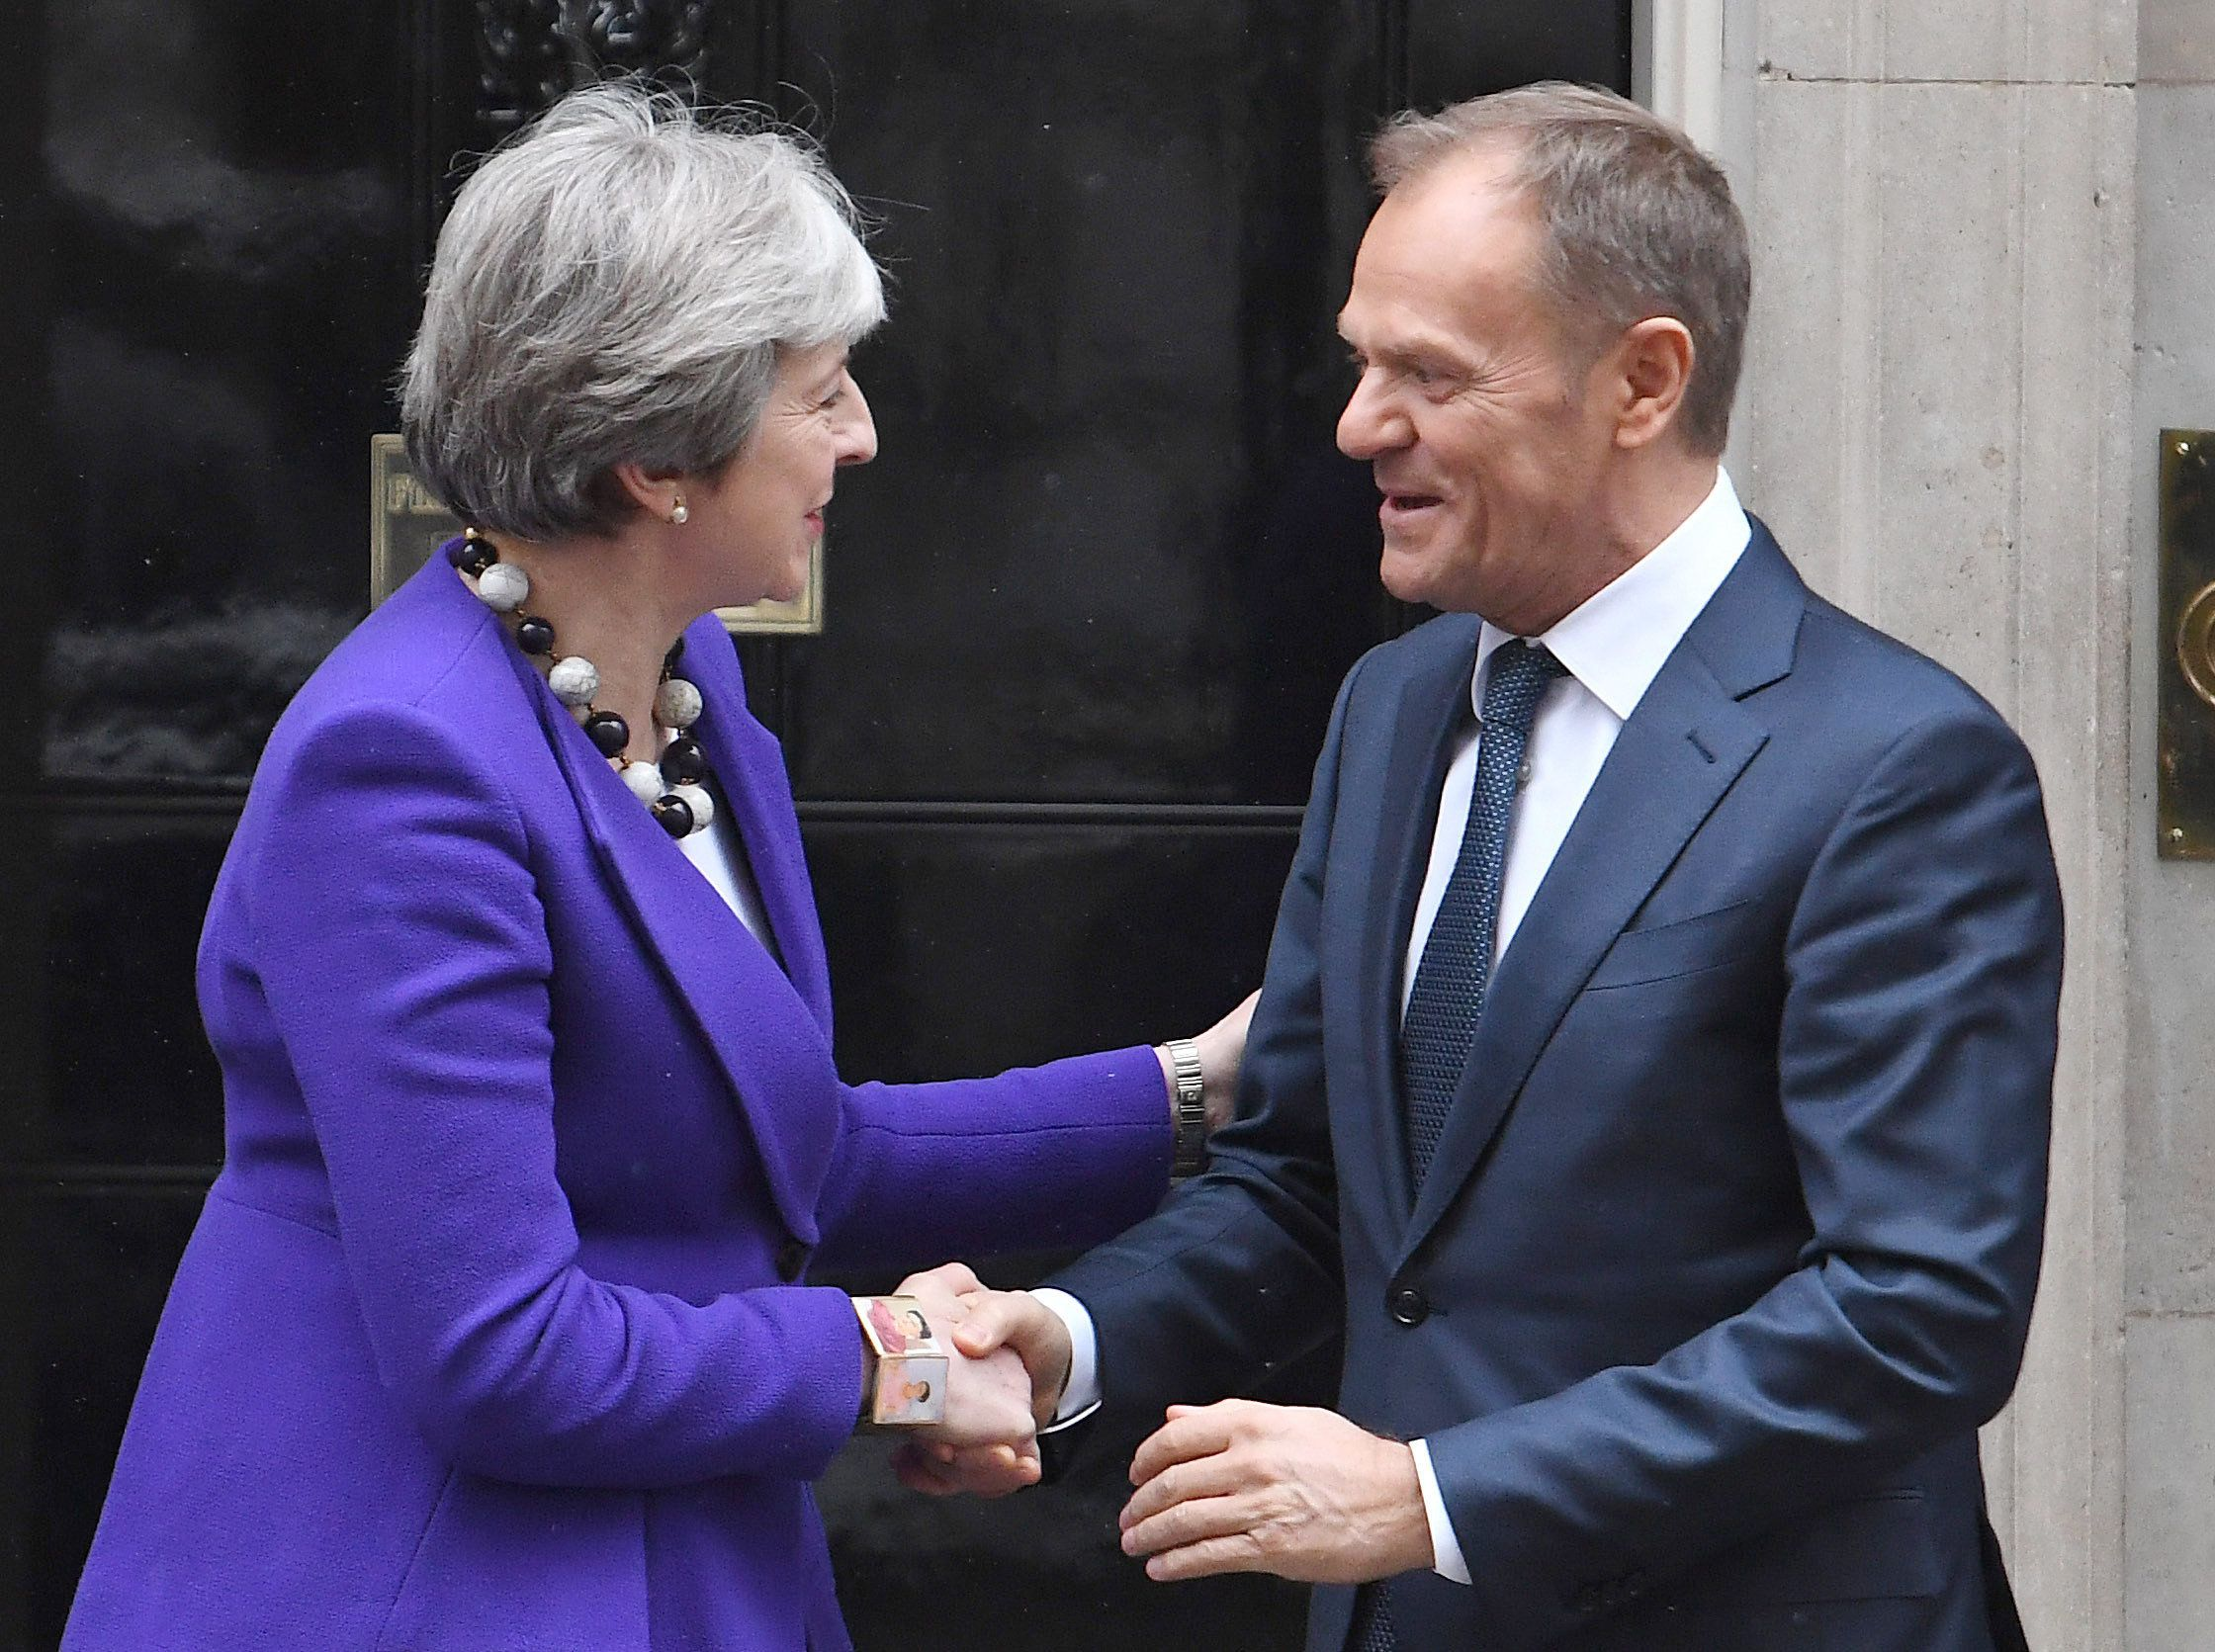 """File photo dated 01/03/18 of Prime Minister Theresa May and European Council president Donald Tusk at Downing Street, London. Theresa May is to write to Donald Tusk today with the UK's request for a further delay to Brexit, as the European Council president is proposing to offer the UK a 12-month """"flextension"""", a Downing Street source said."""